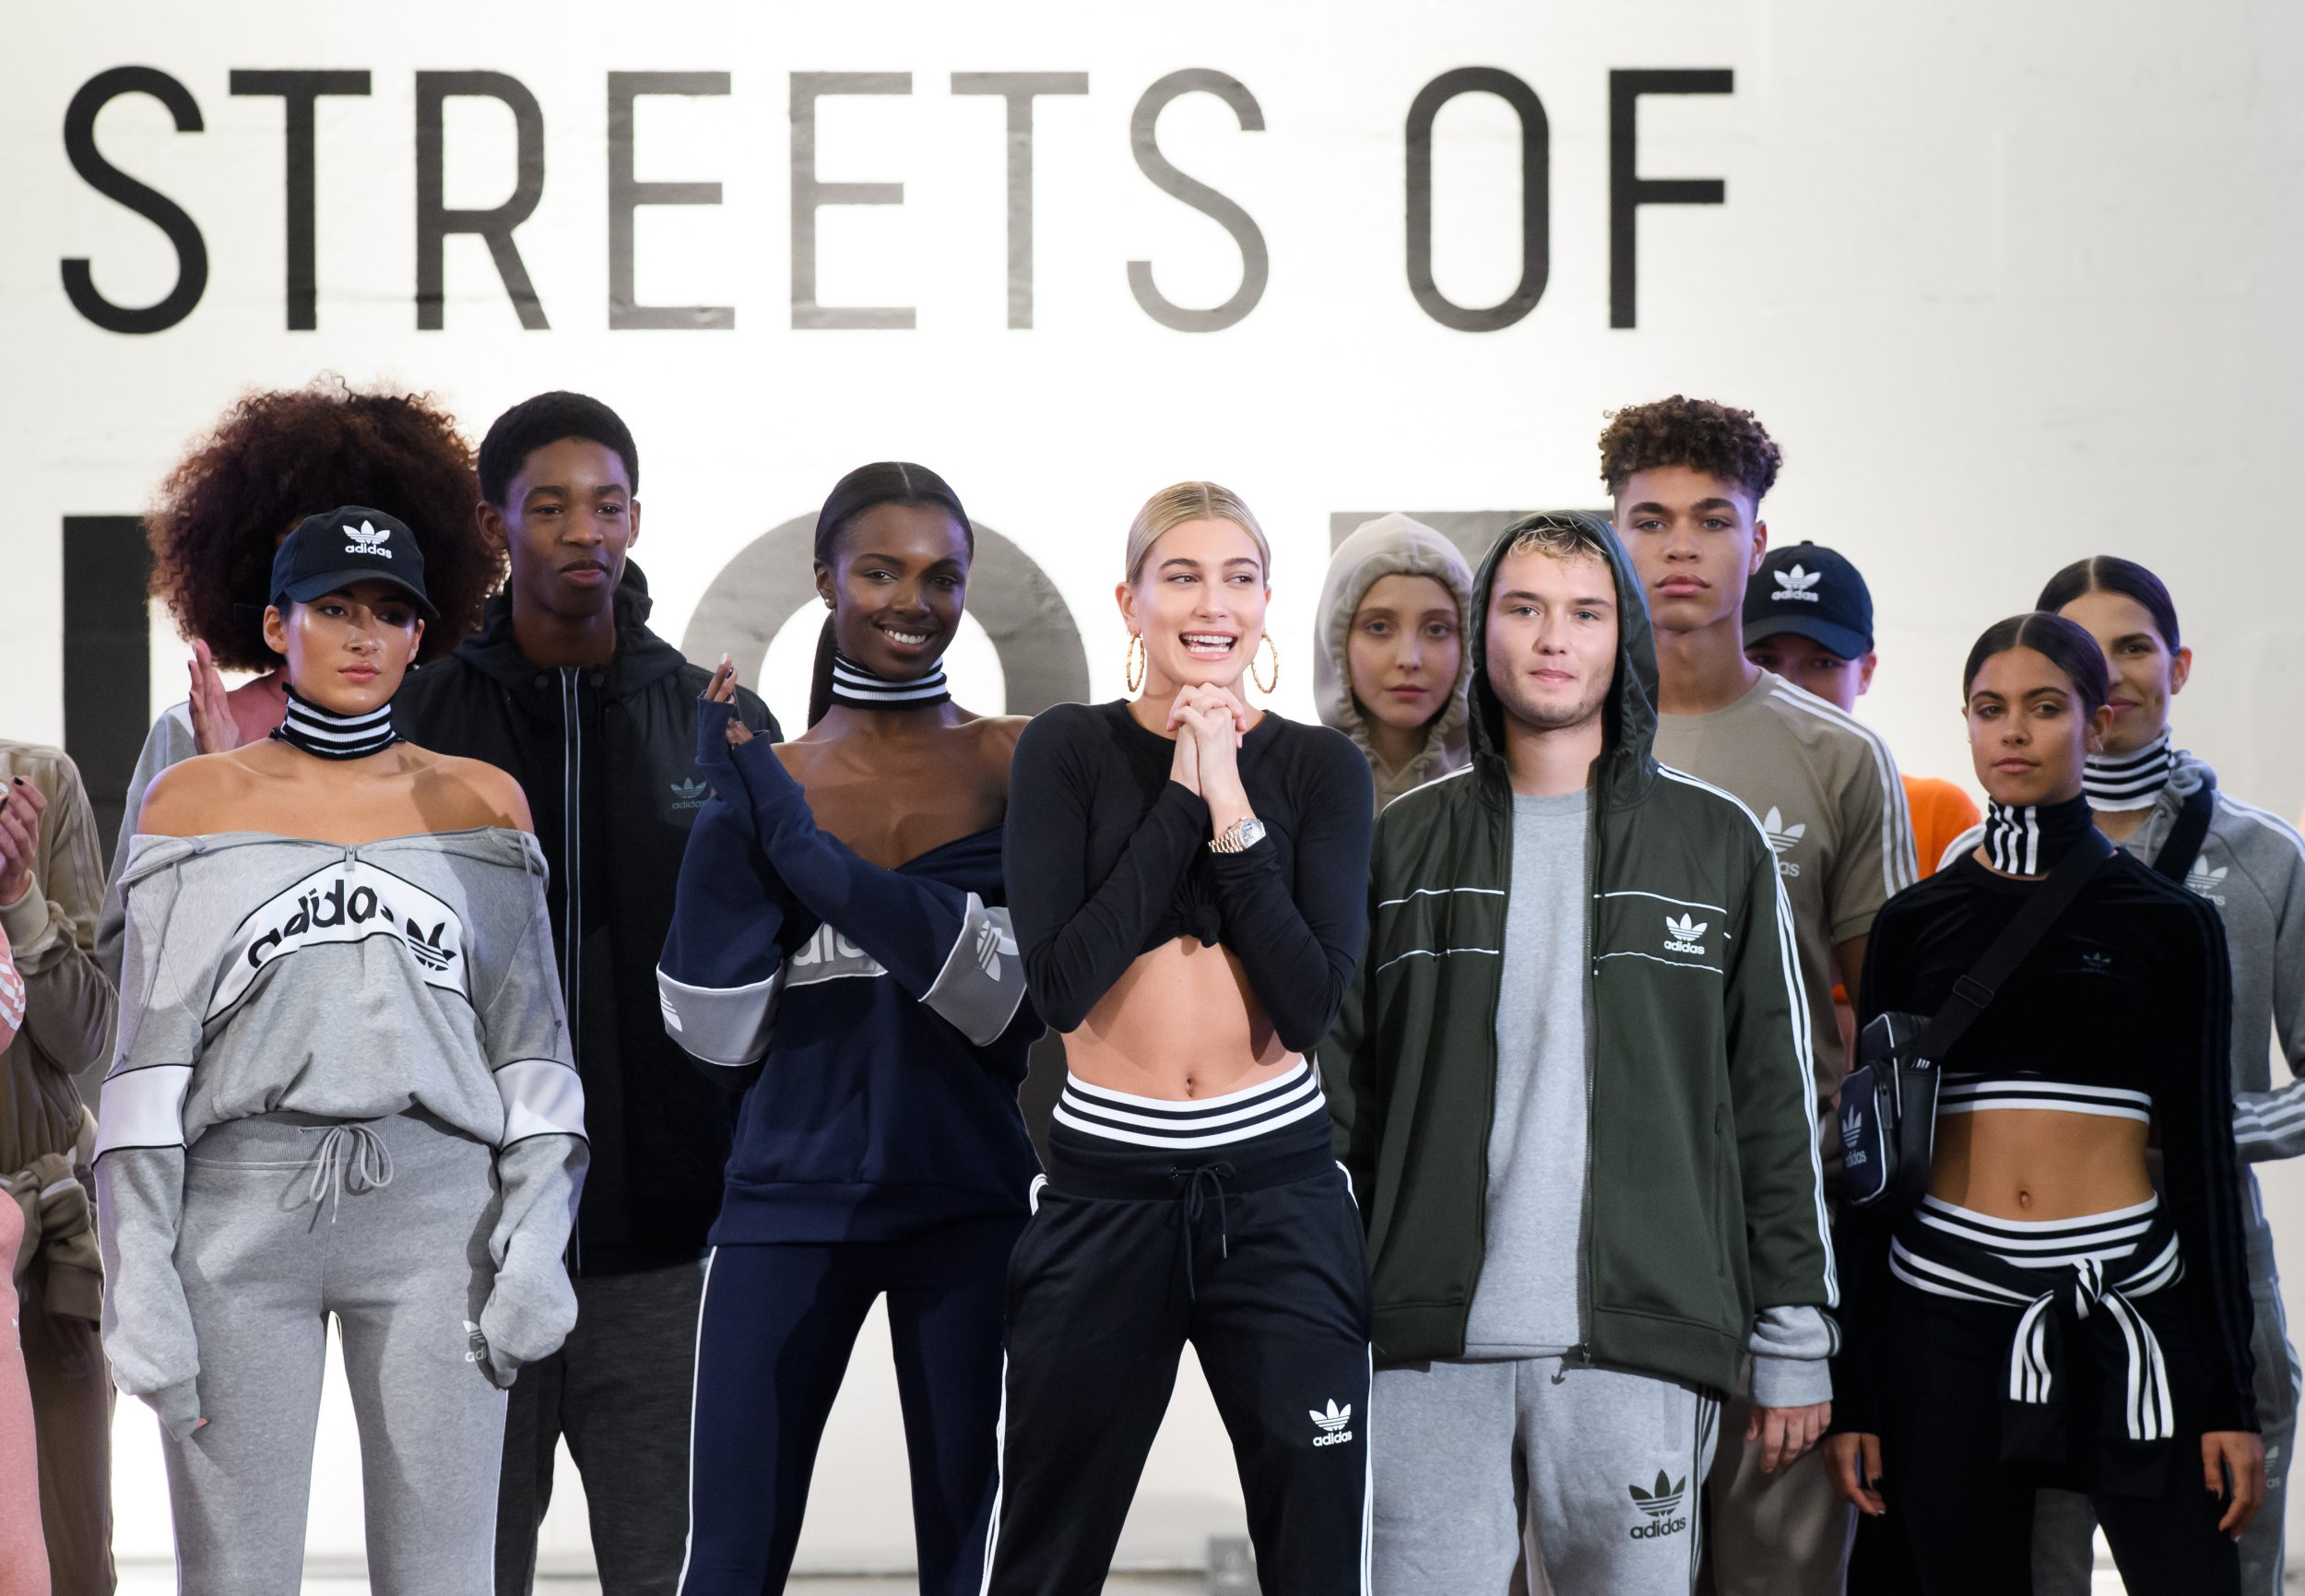 Hailey Baldwin gushes about 'really cool' Victoria Beckham during Adidas show at London Fashion Week